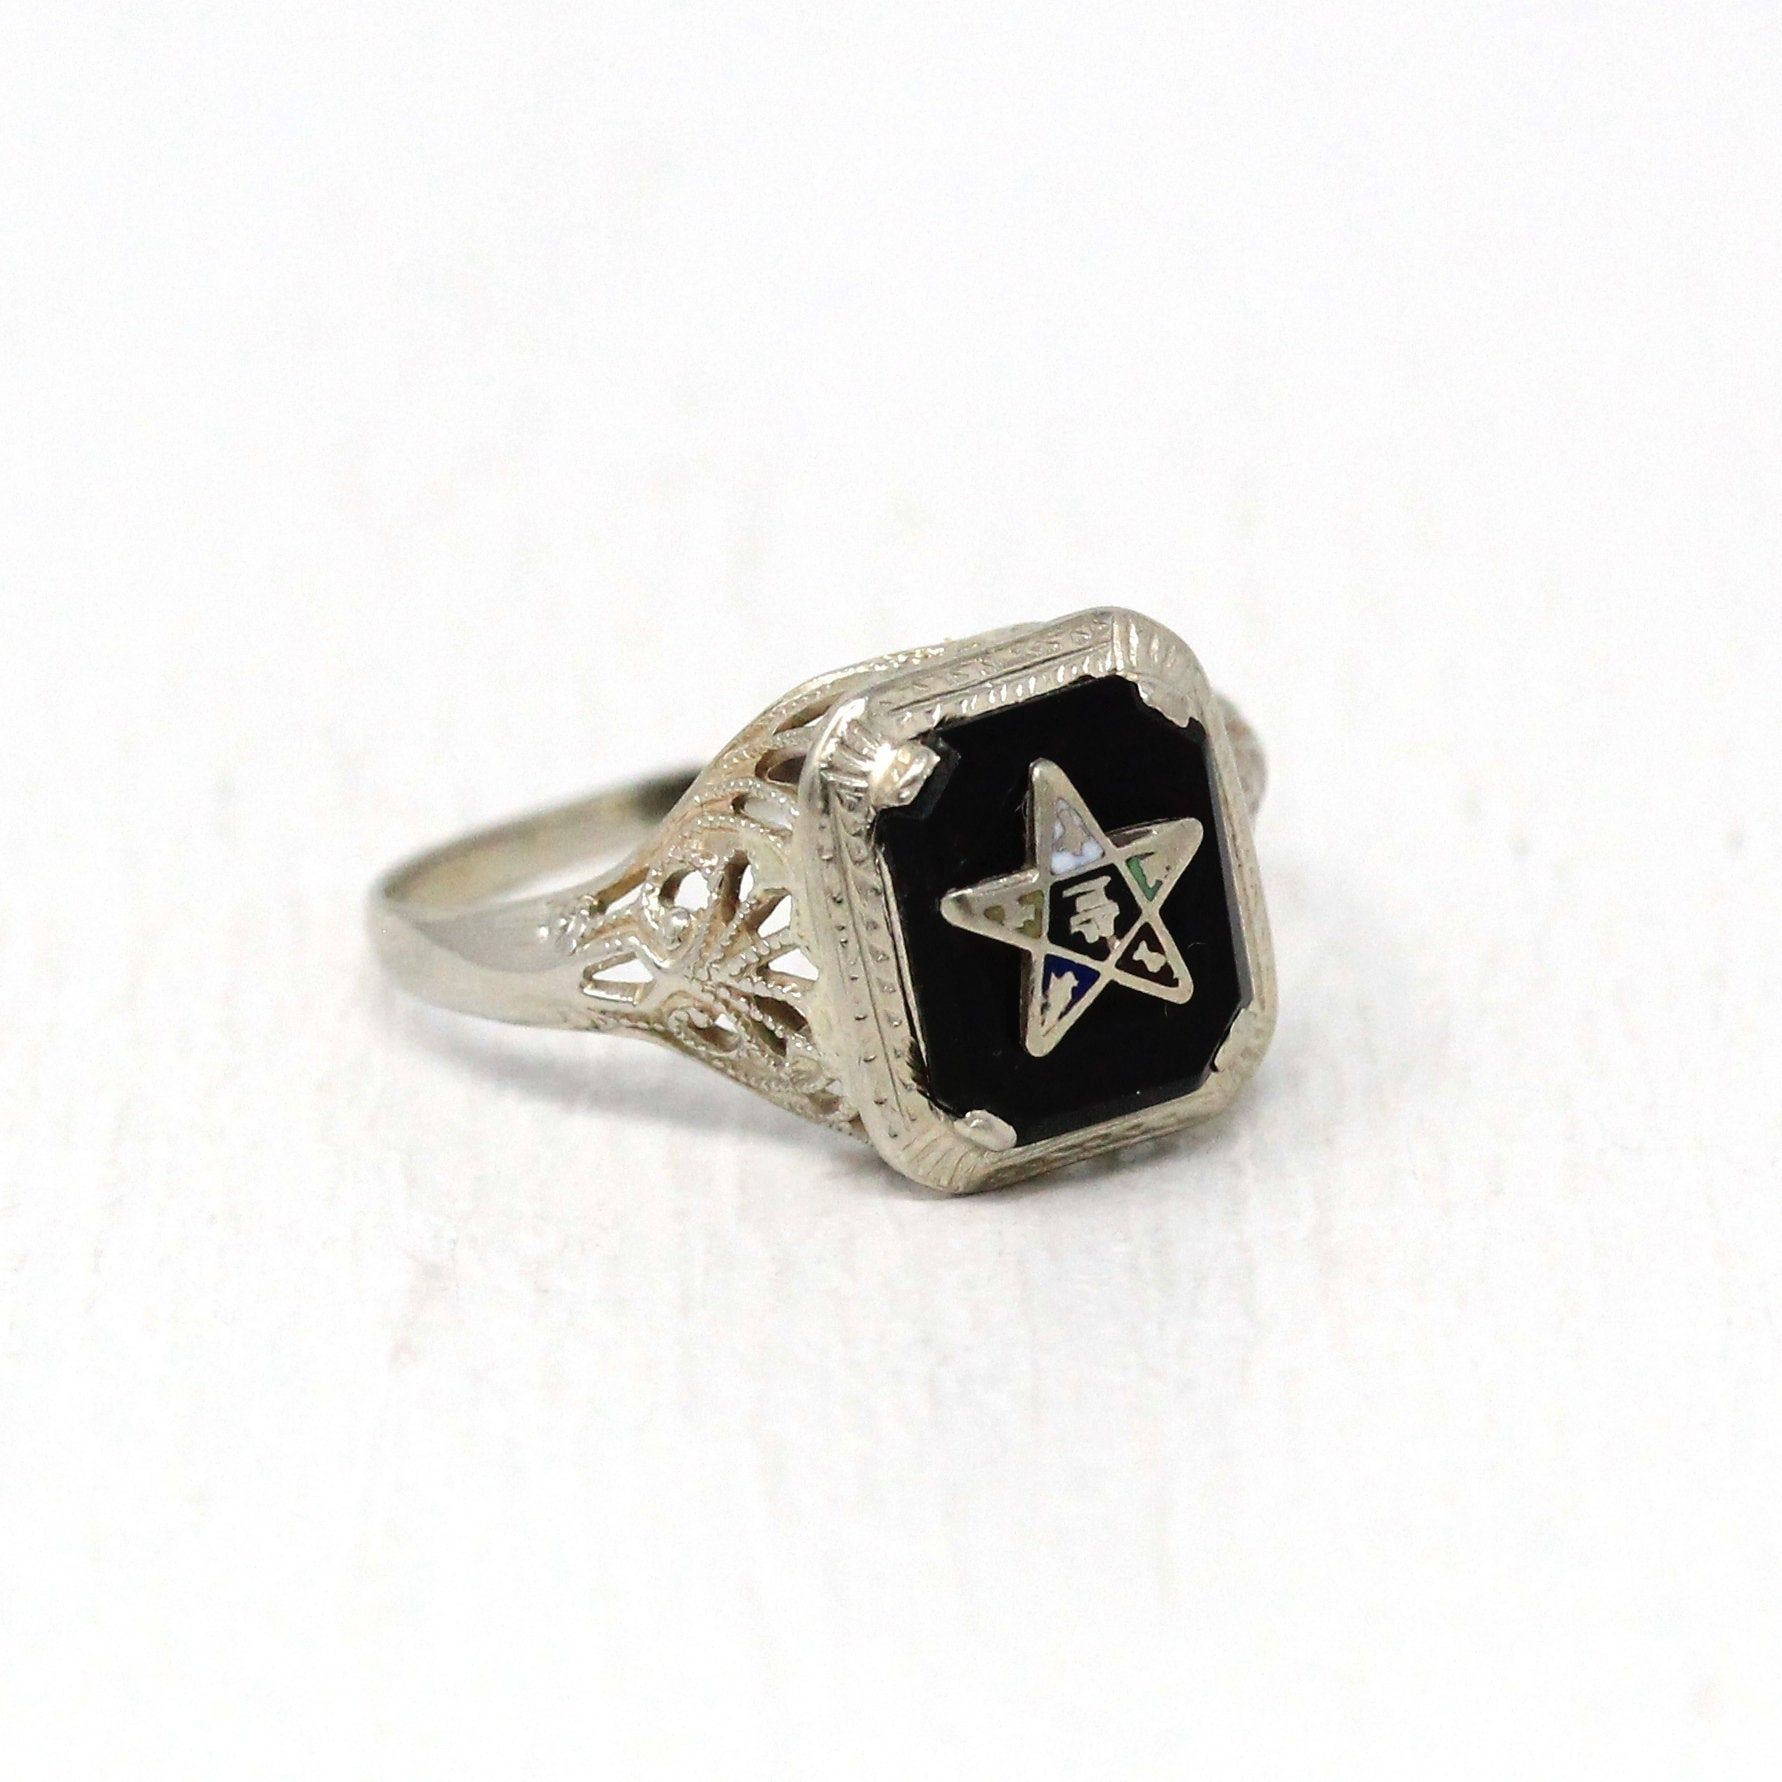 Vintage Eastern Star Ring 10k White Gold Art Deco Onyx Order Etsy In 2020 Gold Art Deco Gold Art Filigree Jewelry